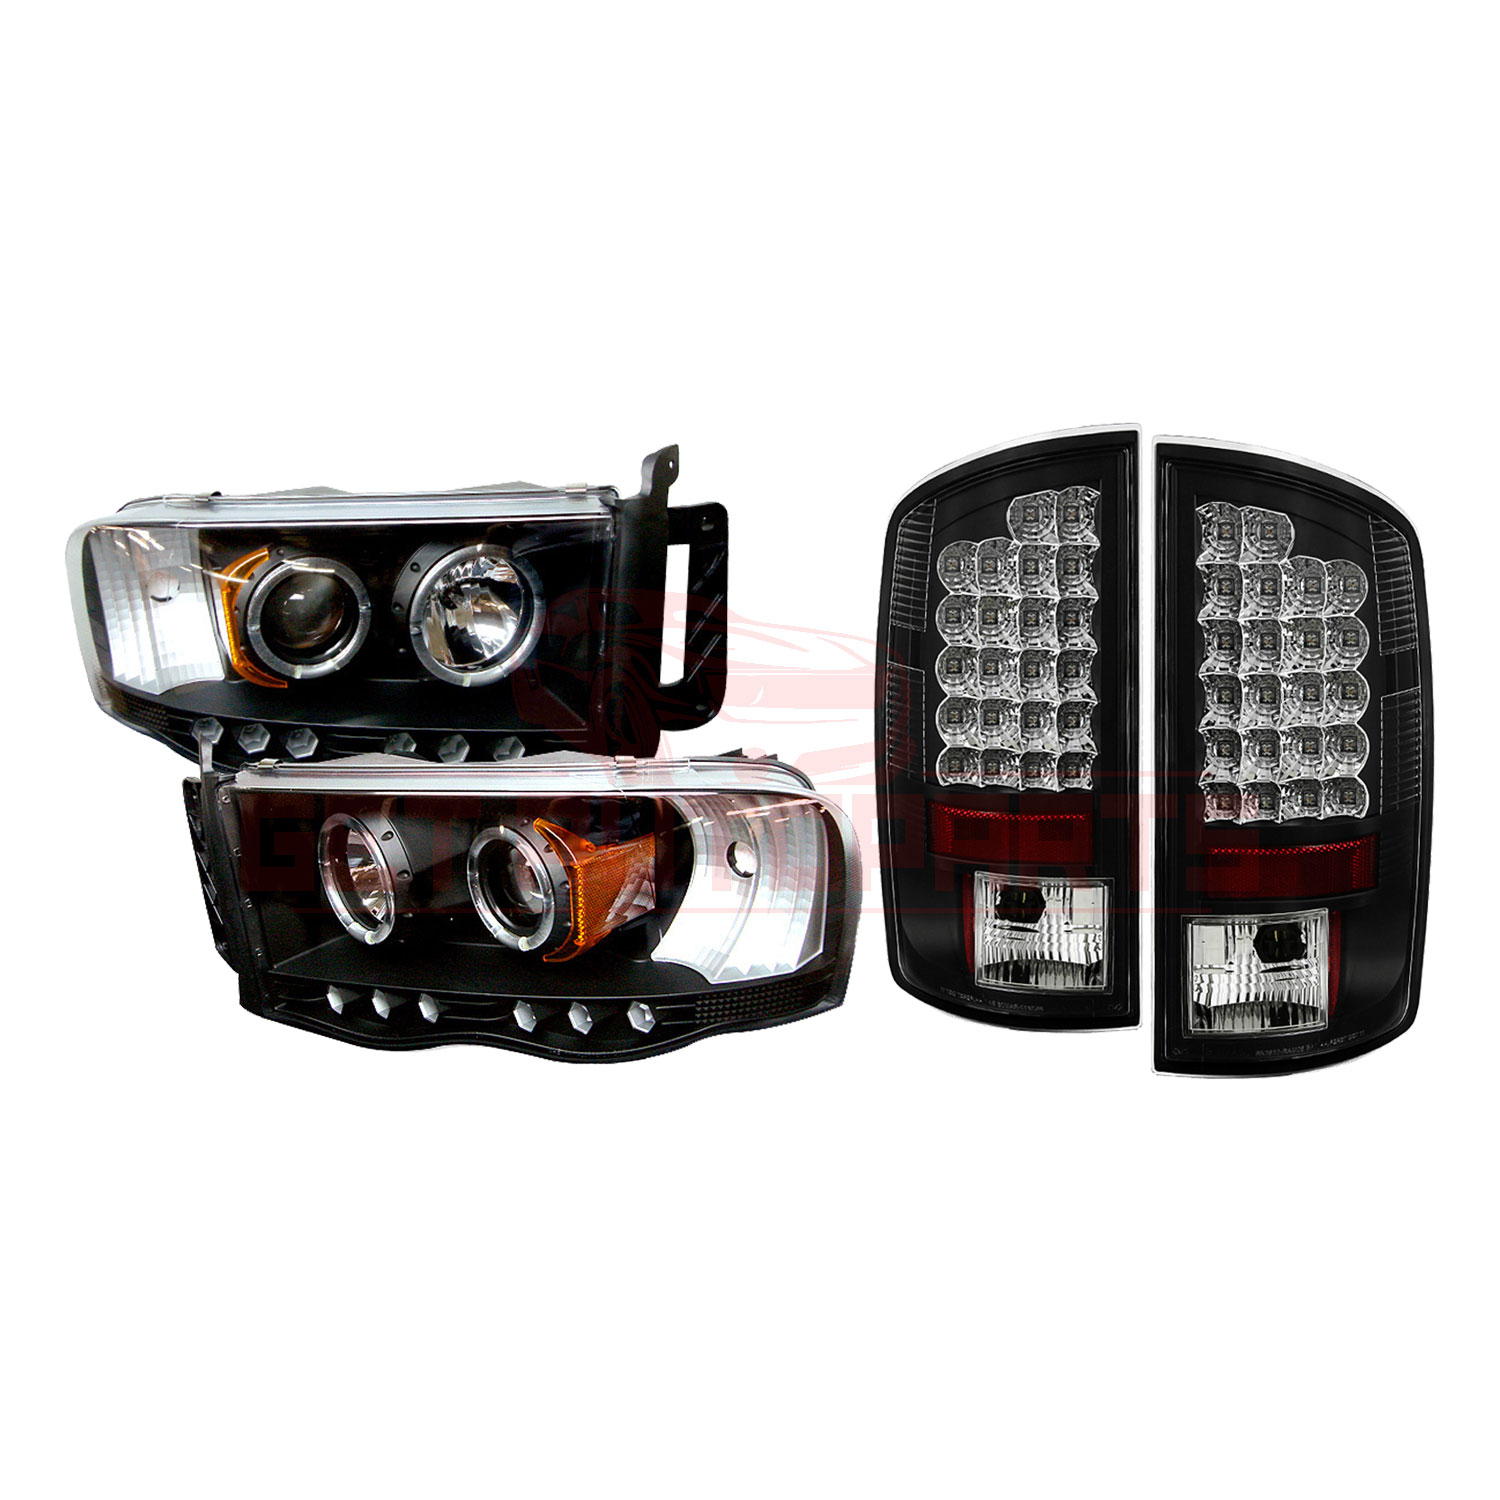 Spyder Halo LED Projector Headlights & LED Tail Lights for Dodge Ram 02-05 part in Headlight & Tail Light Covers category